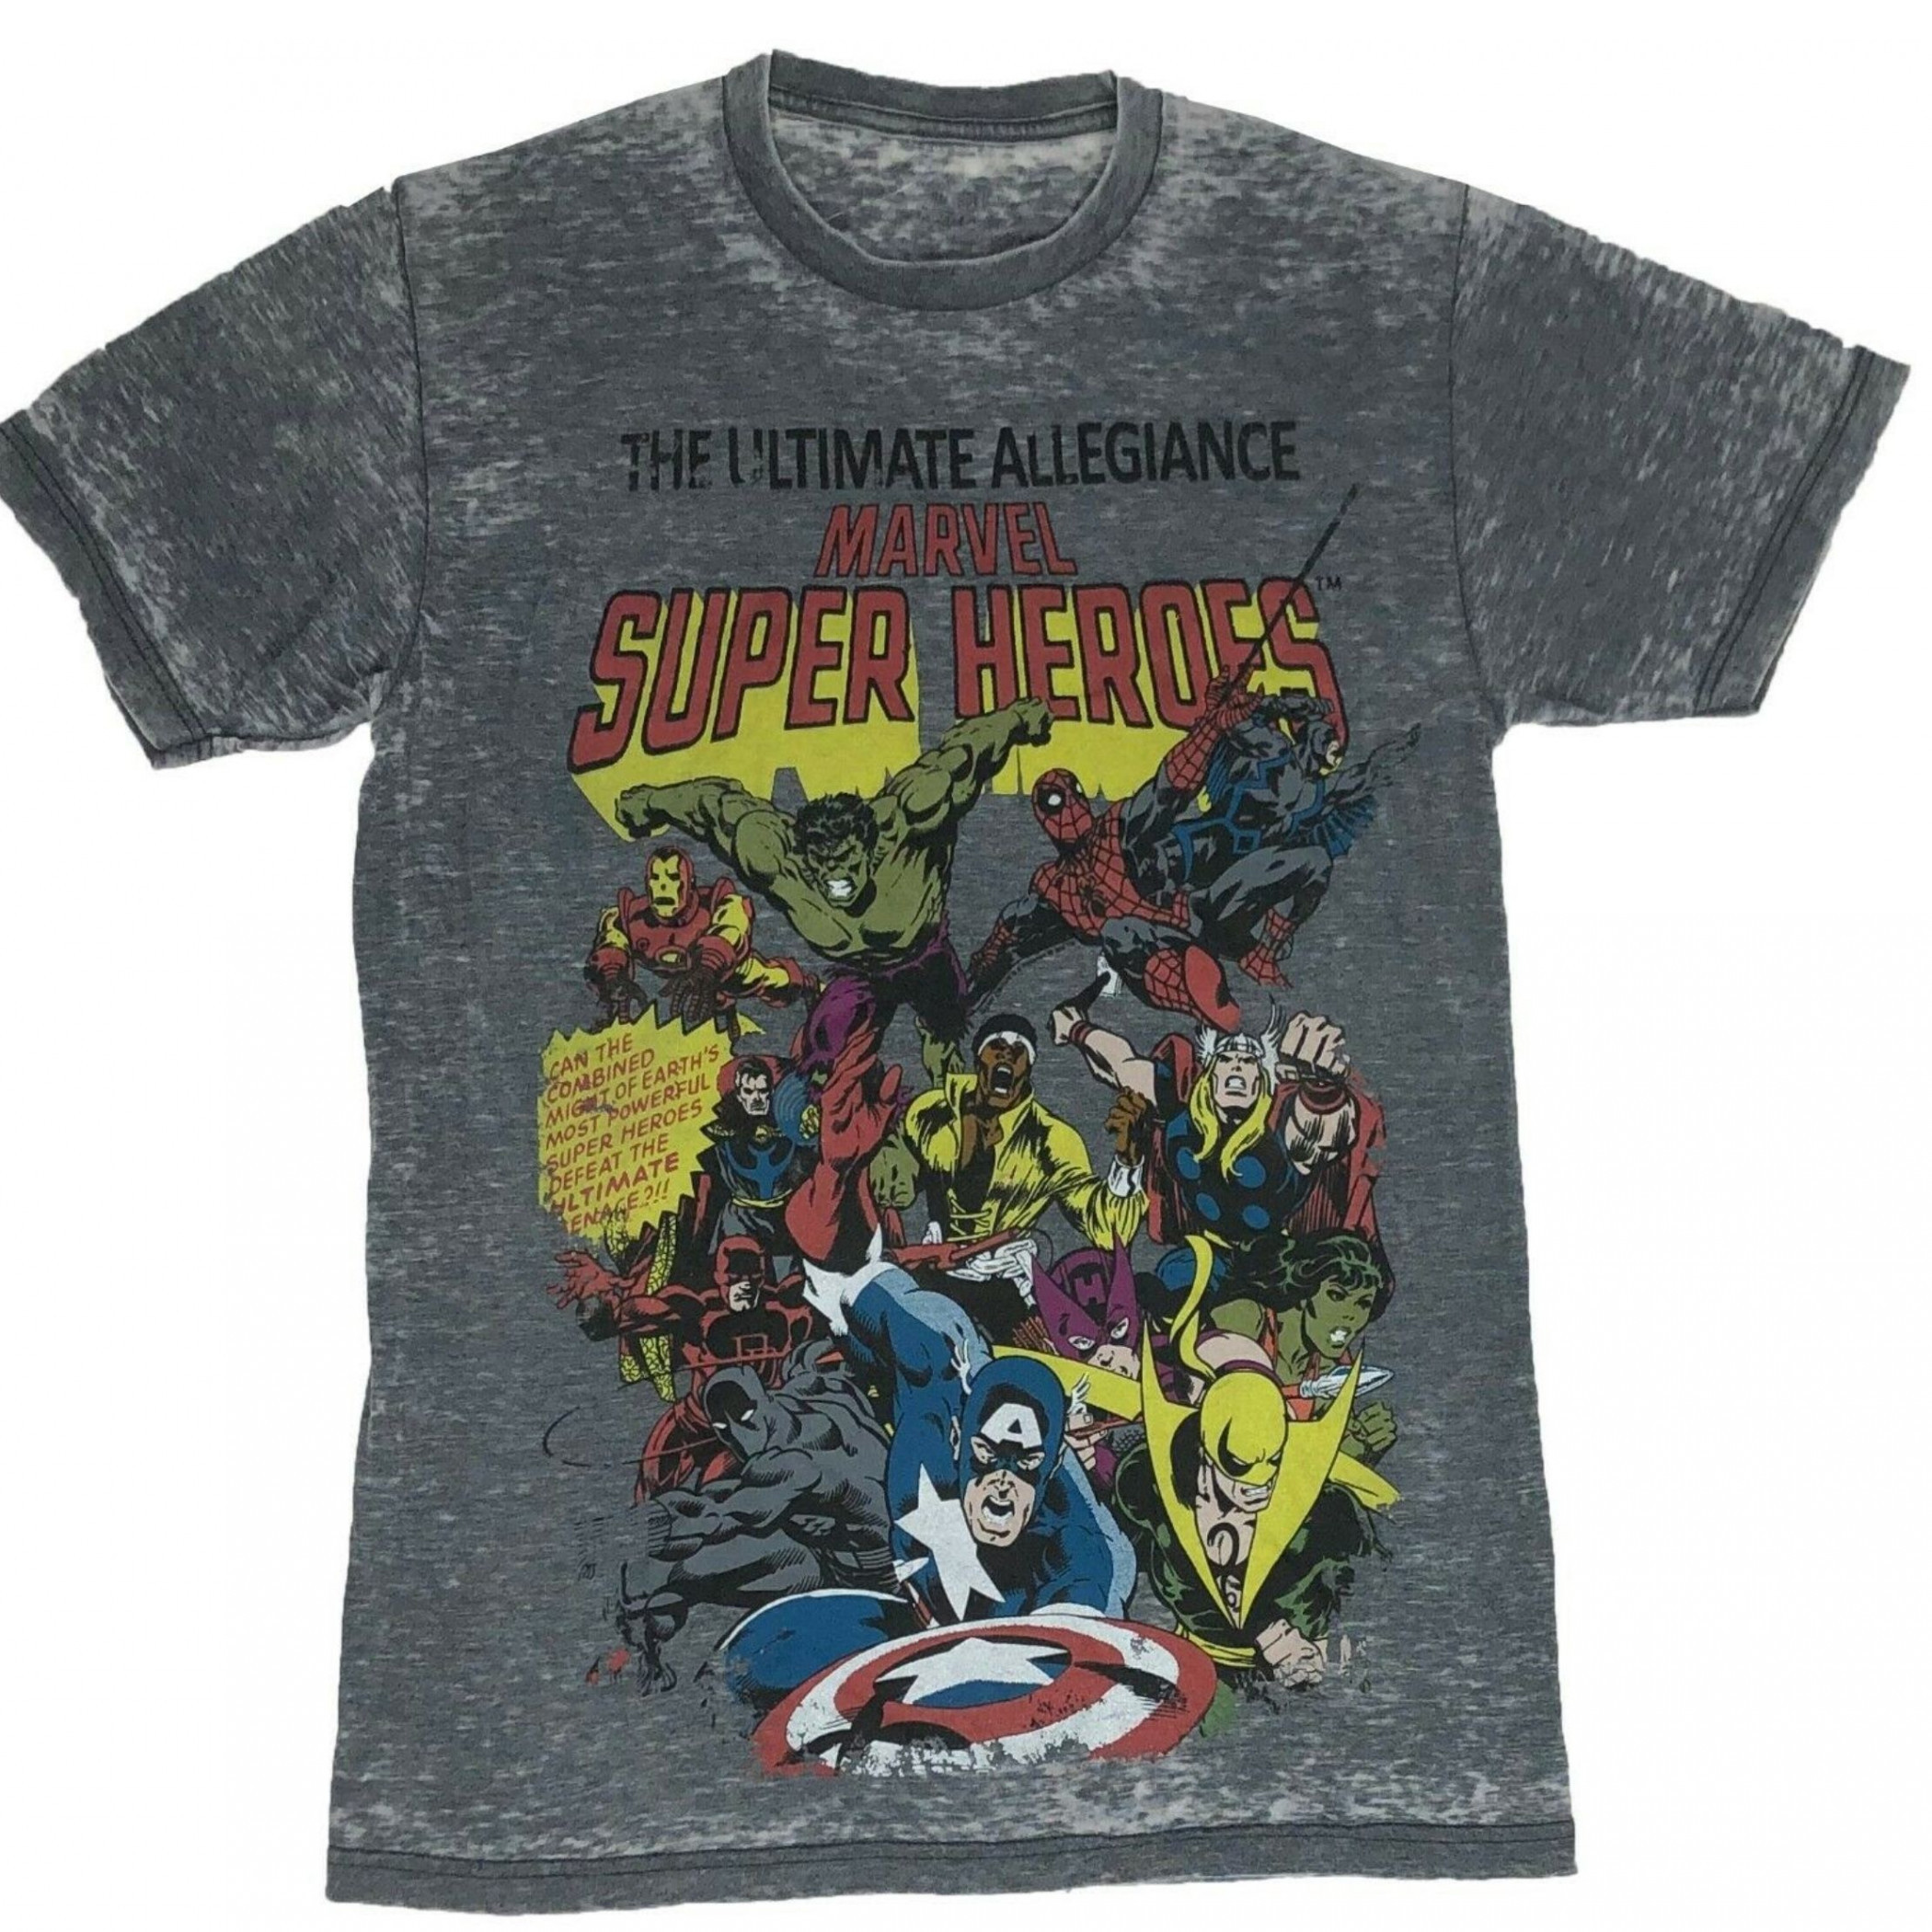 Marvel Avengers Ultimate Allegiance Super Heroes T-shirt